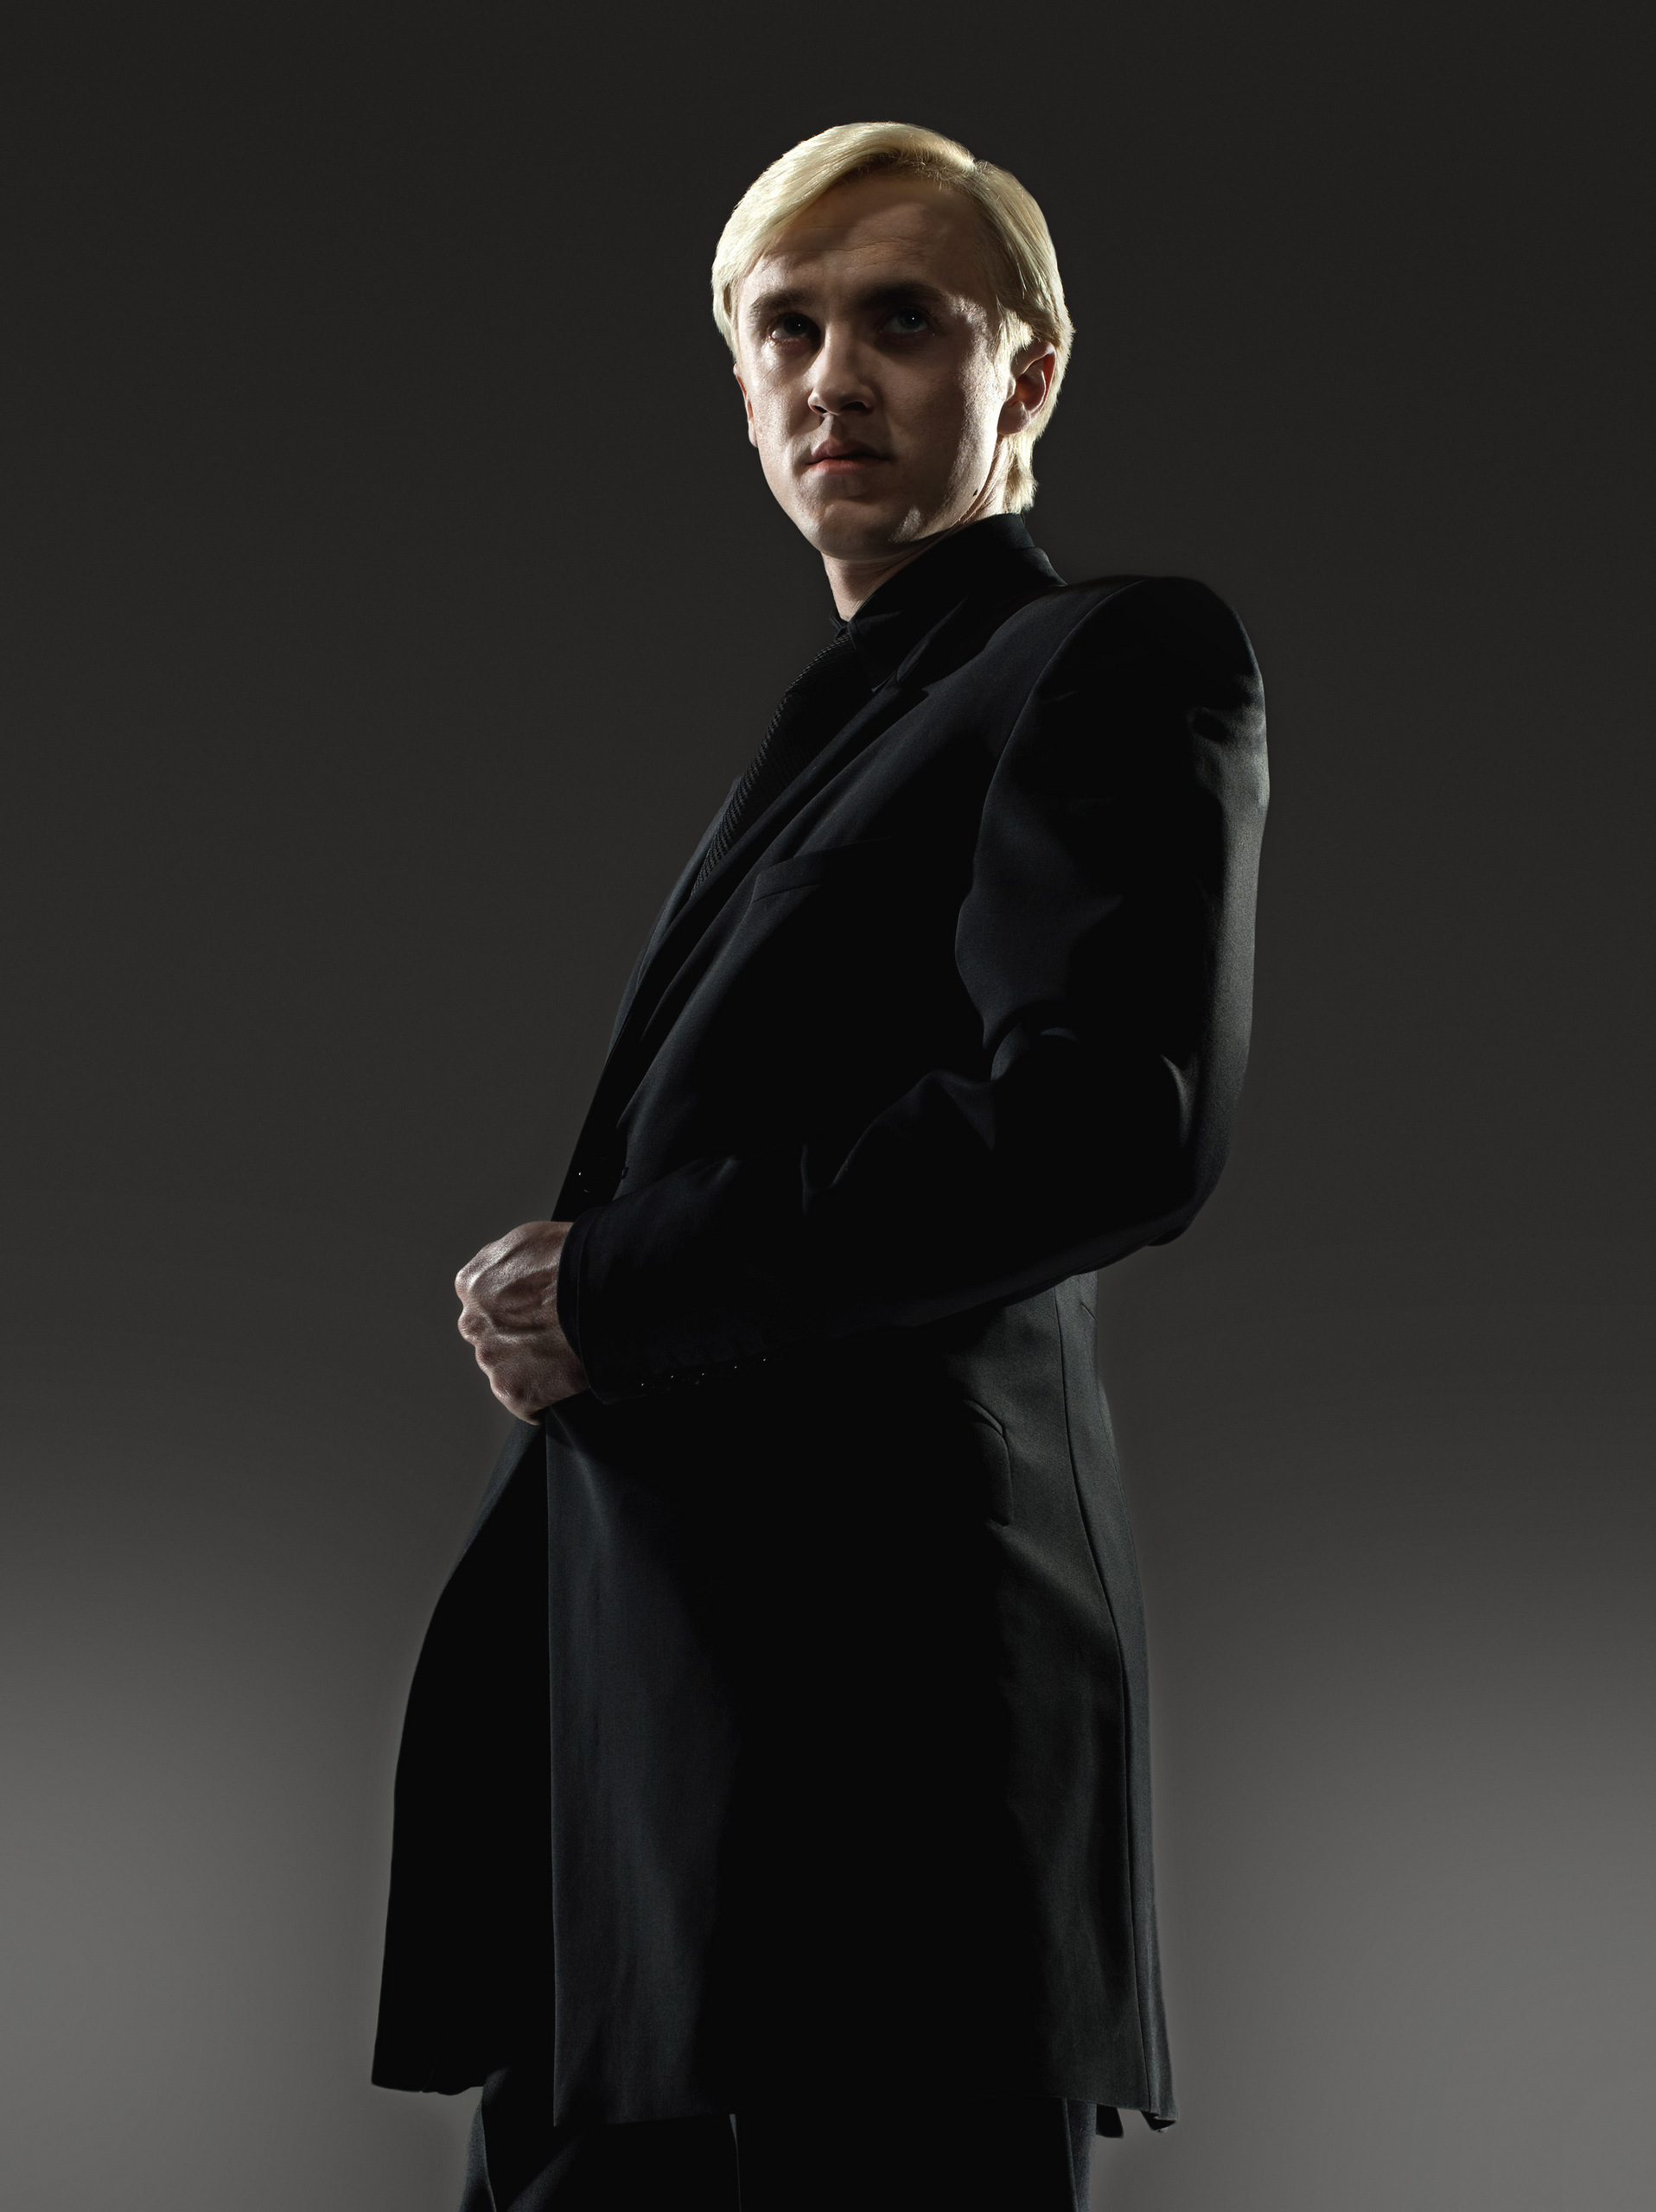 Draco Malfoy Wallpaper Deathly Hallows Draco Malfoy New Deathly